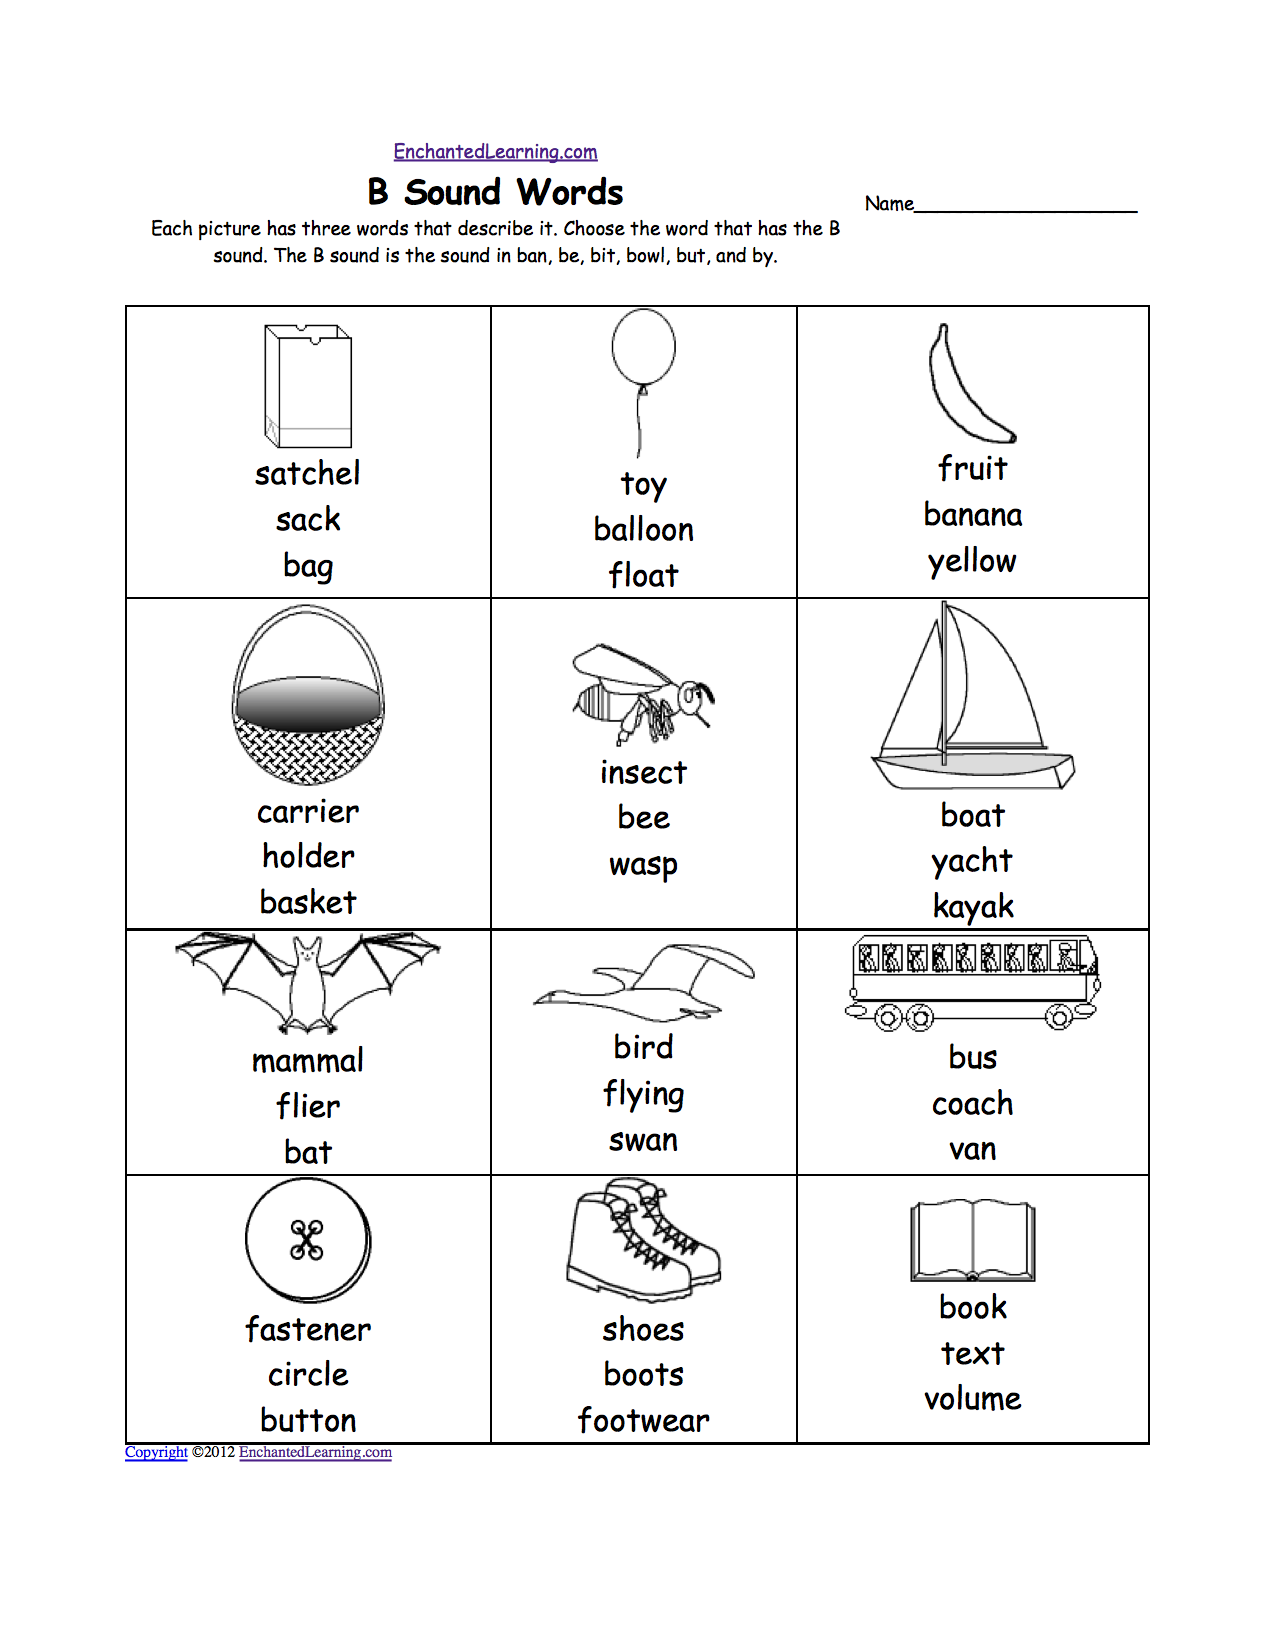 Weirdmailus  Nice Phonics Worksheets Multiple Choice Worksheets To Print  With Licious Quotbquot Sound Phonics Worksheet Multiple Choice Each Picture Has Three Words That Describe It Choose The Word That Has A Quotbquot Sound The Quotbquot Sound Is The Sound  With Breathtaking Penguin Math Worksheets Also Adding And Subtracting Worksheets For First Grade In Addition Is And Are Worksheets For Preschool And Noun Worksheet For Grade  As Well As Star Kids Worksheets Additionally Adding For Kindergarten Worksheets From Enchantedlearningcom With Weirdmailus  Licious Phonics Worksheets Multiple Choice Worksheets To Print  With Breathtaking Quotbquot Sound Phonics Worksheet Multiple Choice Each Picture Has Three Words That Describe It Choose The Word That Has A Quotbquot Sound The Quotbquot Sound Is The Sound  And Nice Penguin Math Worksheets Also Adding And Subtracting Worksheets For First Grade In Addition Is And Are Worksheets For Preschool From Enchantedlearningcom